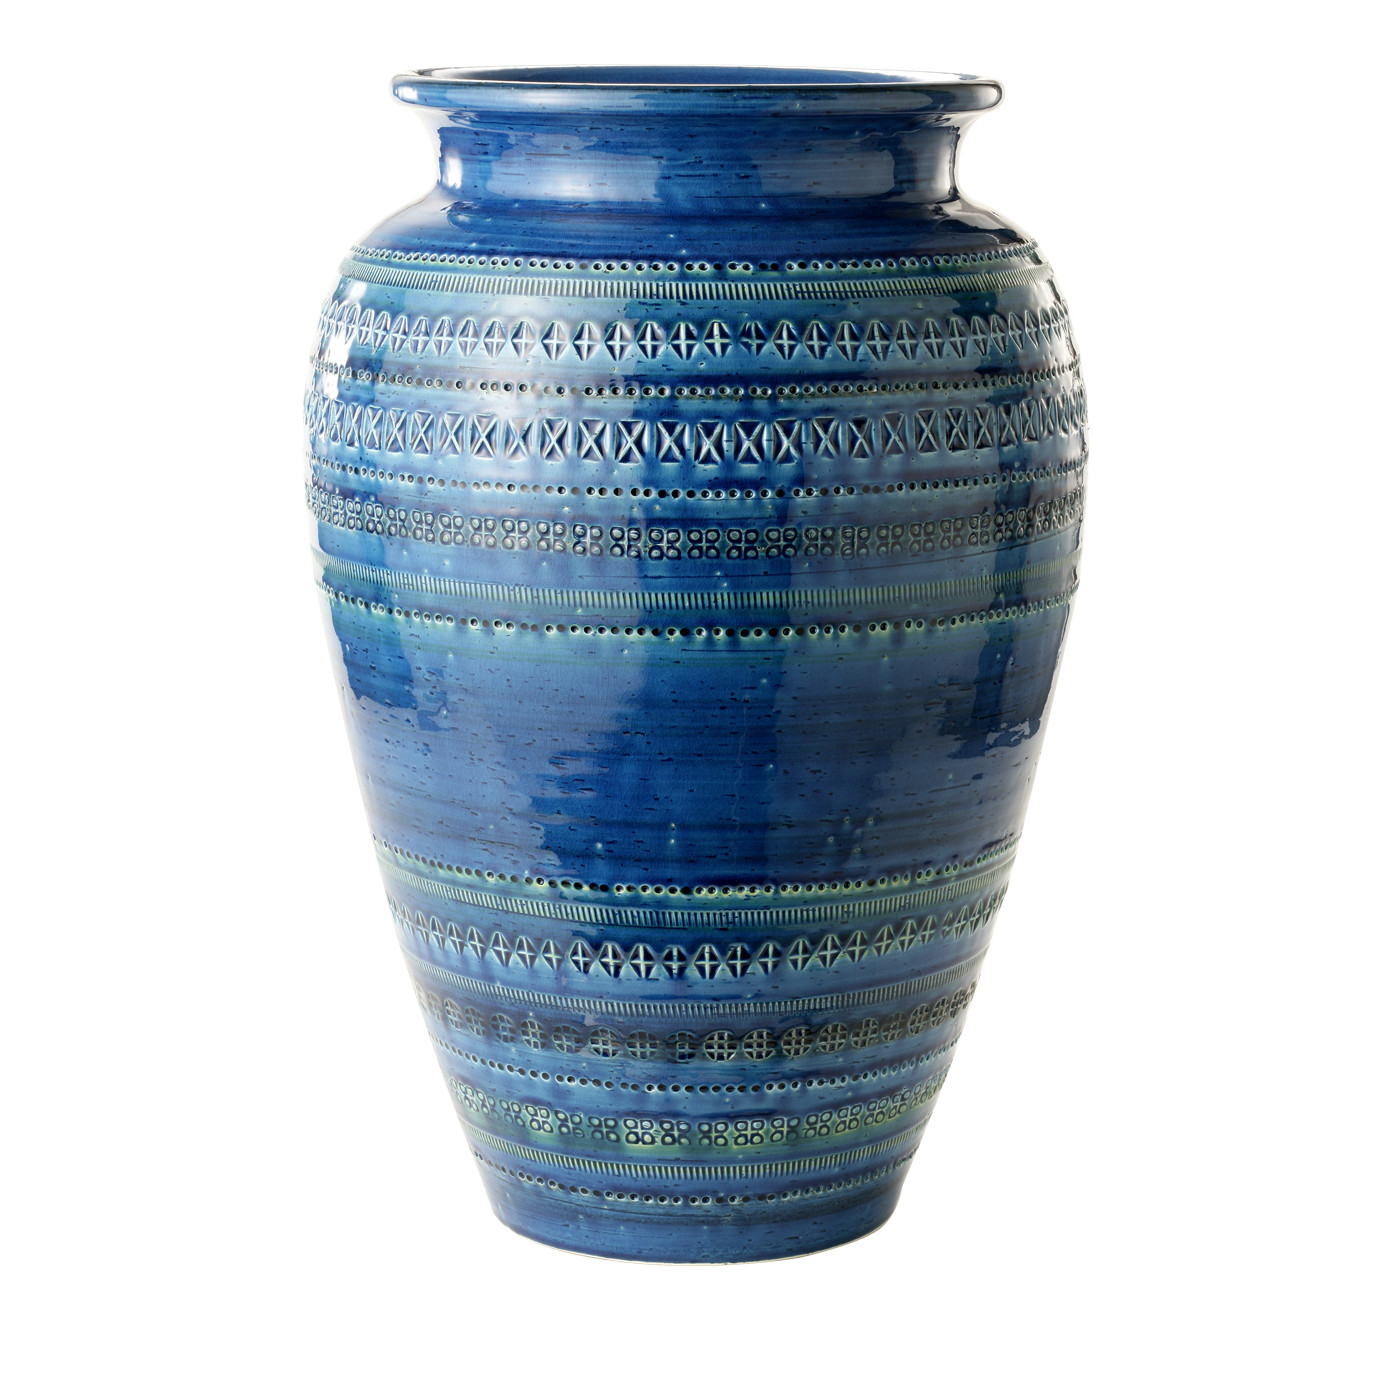 handmade glass vase from poland of blue umbrella holder by aldo londi shop bitossi ceramiche online inside we use profiling cookies to offer our services personalize your experience and send you advertising by continuing to use the site you accept our policy